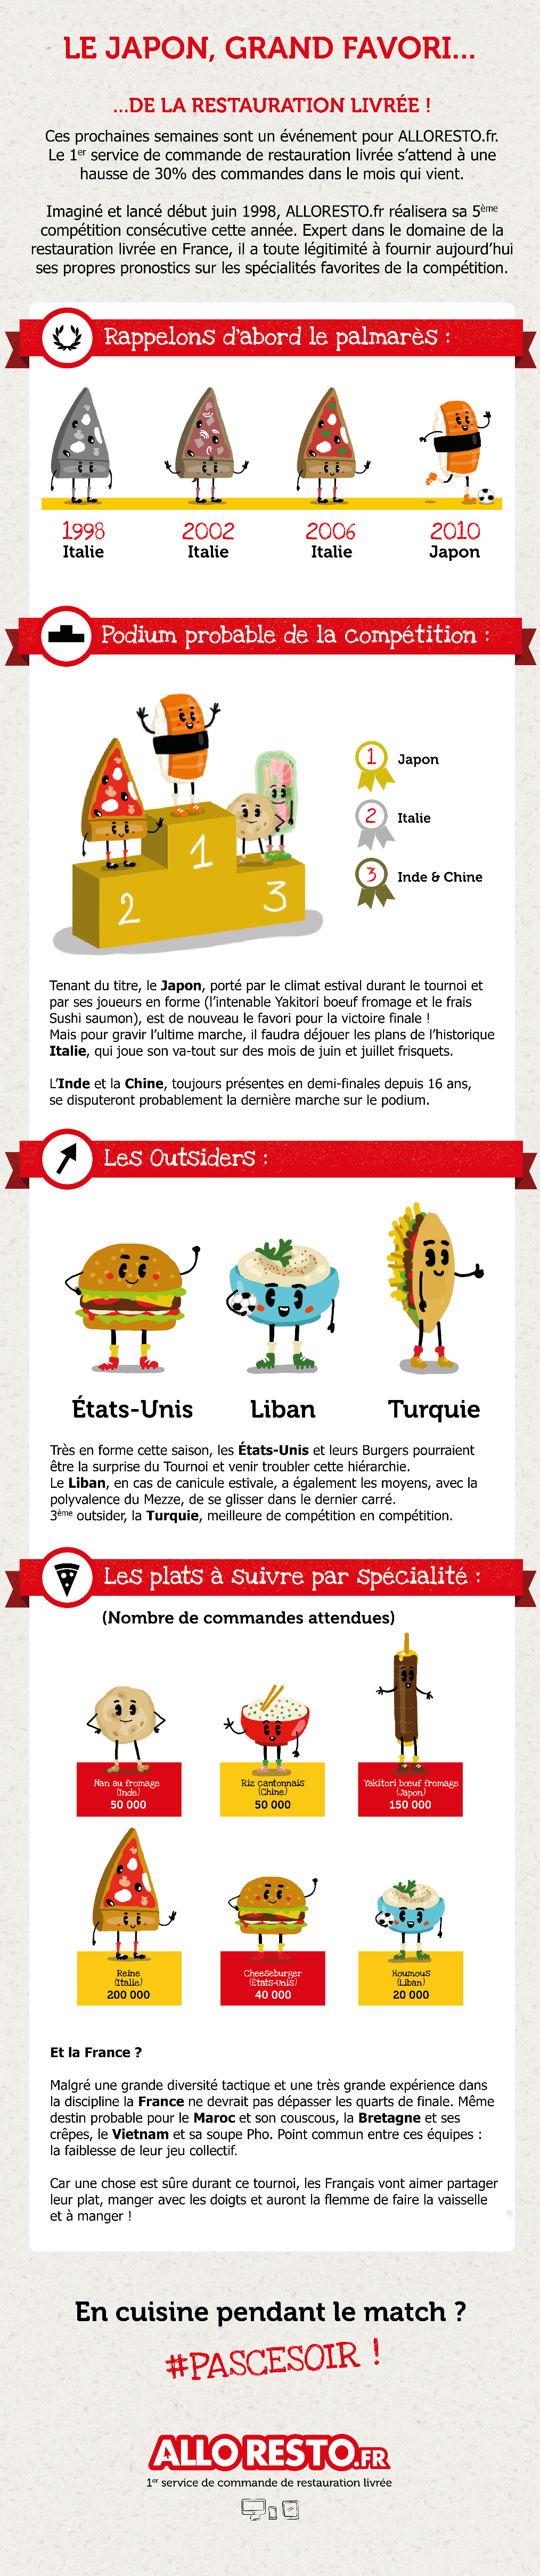 Infographie Alloresto